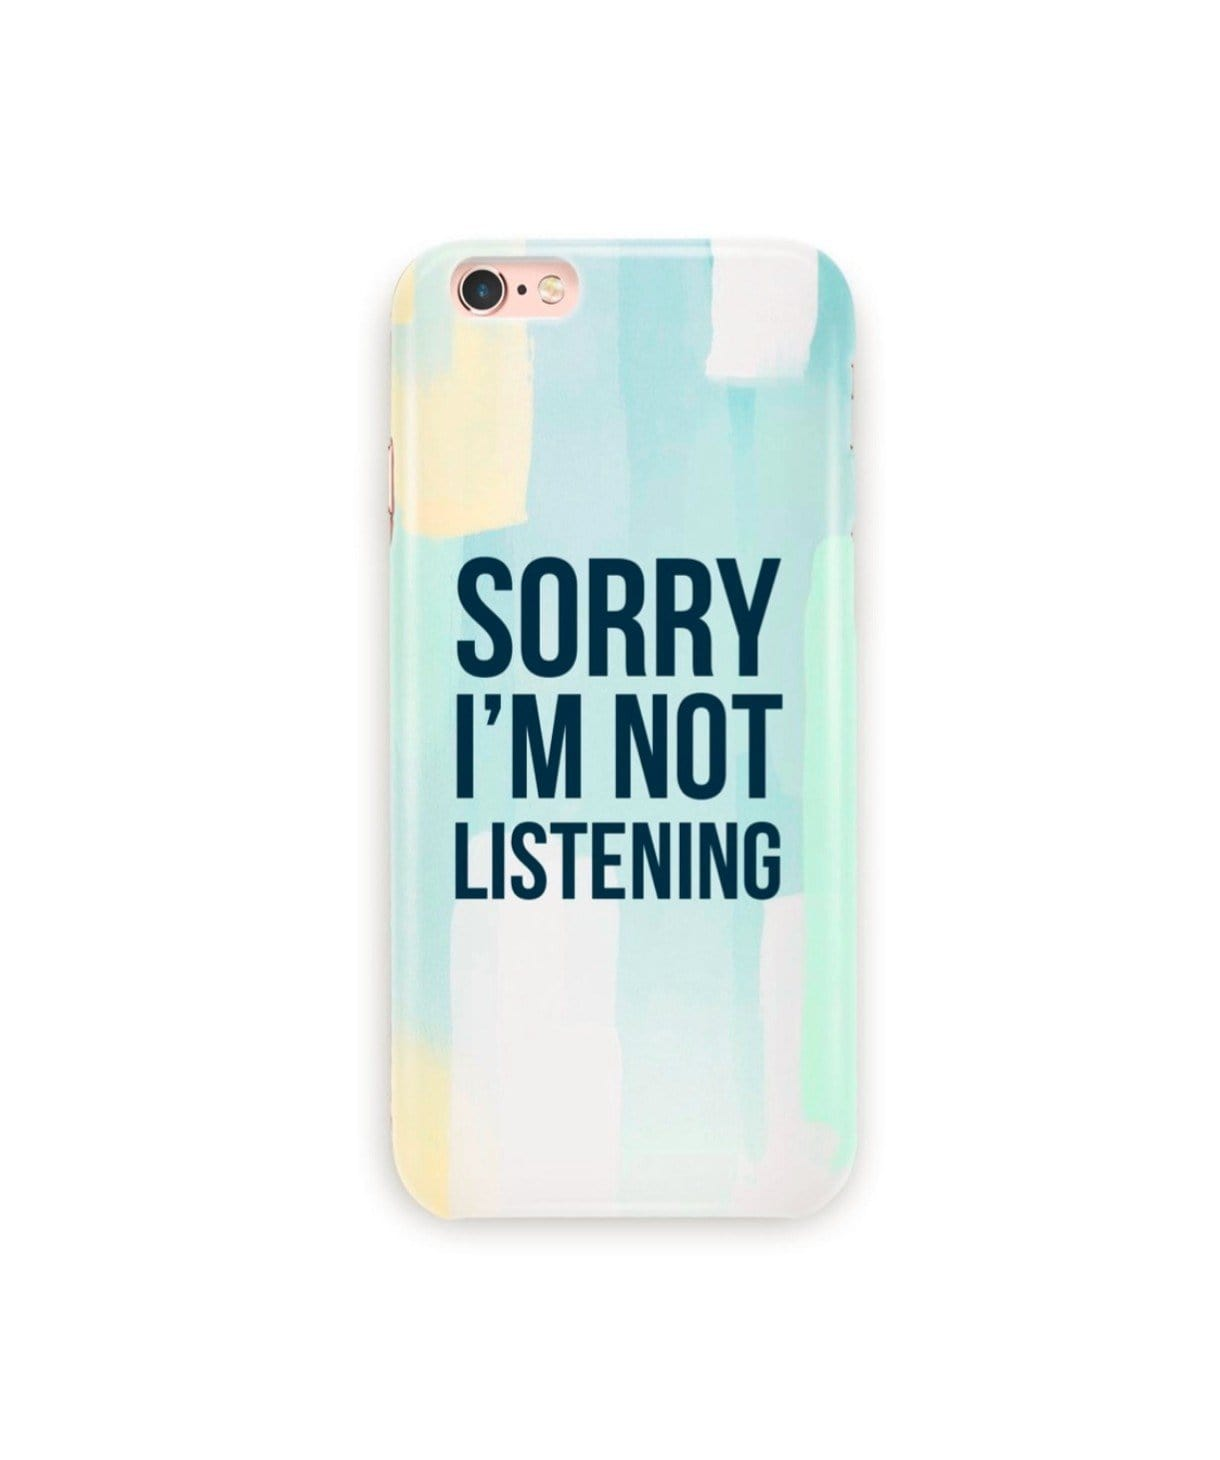 I'm Not Listening IPhone Cover (Personalisation Available) - Uptownie